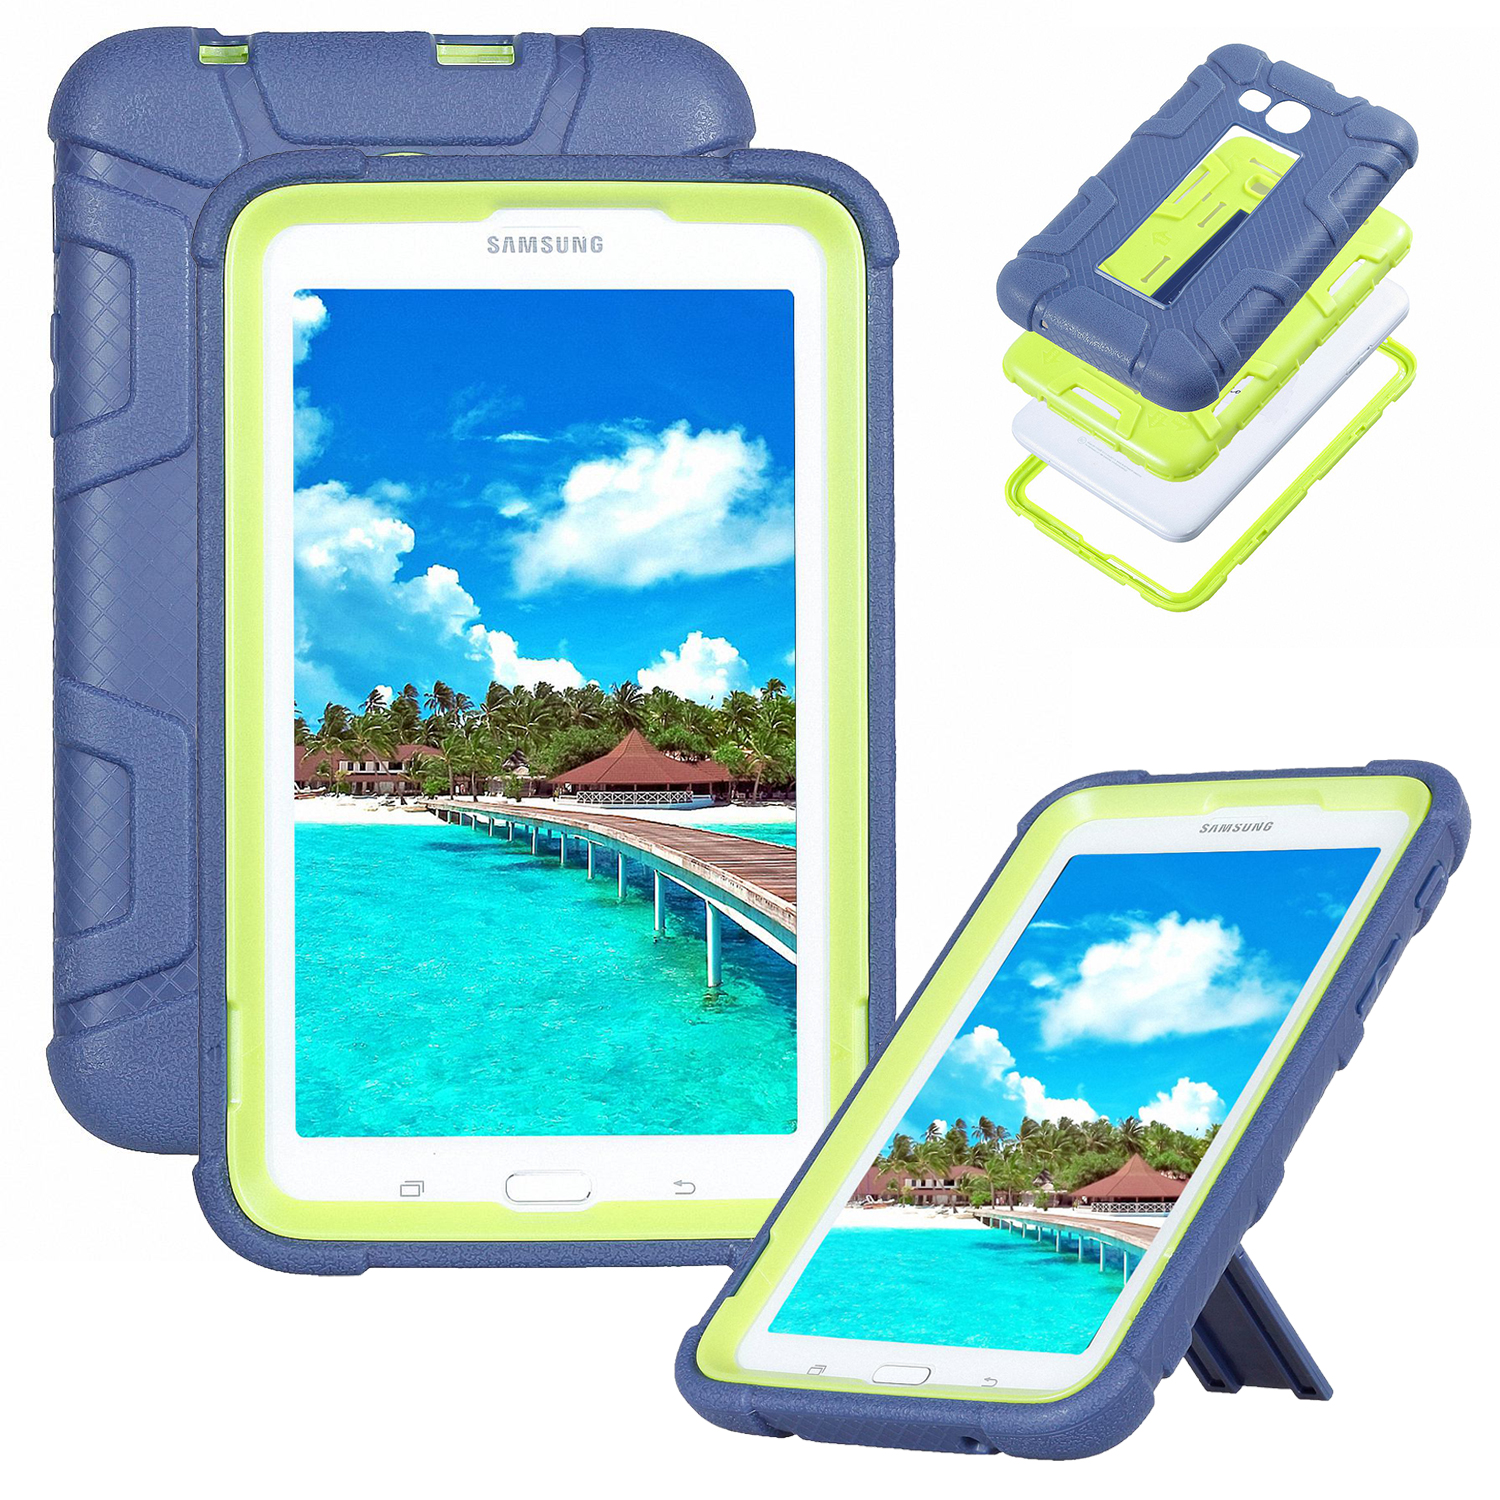 """Goodest Galaxy Tab E Lite / Galaxy Tab 3 Lite 7"""" Kids Case T110 T111 T113 T116, Silicone Rubber Armor Protective Shockproof Armor Kickstand Cover for Samsung Galaxy Tab E/3 Lite, Black+Mint"""